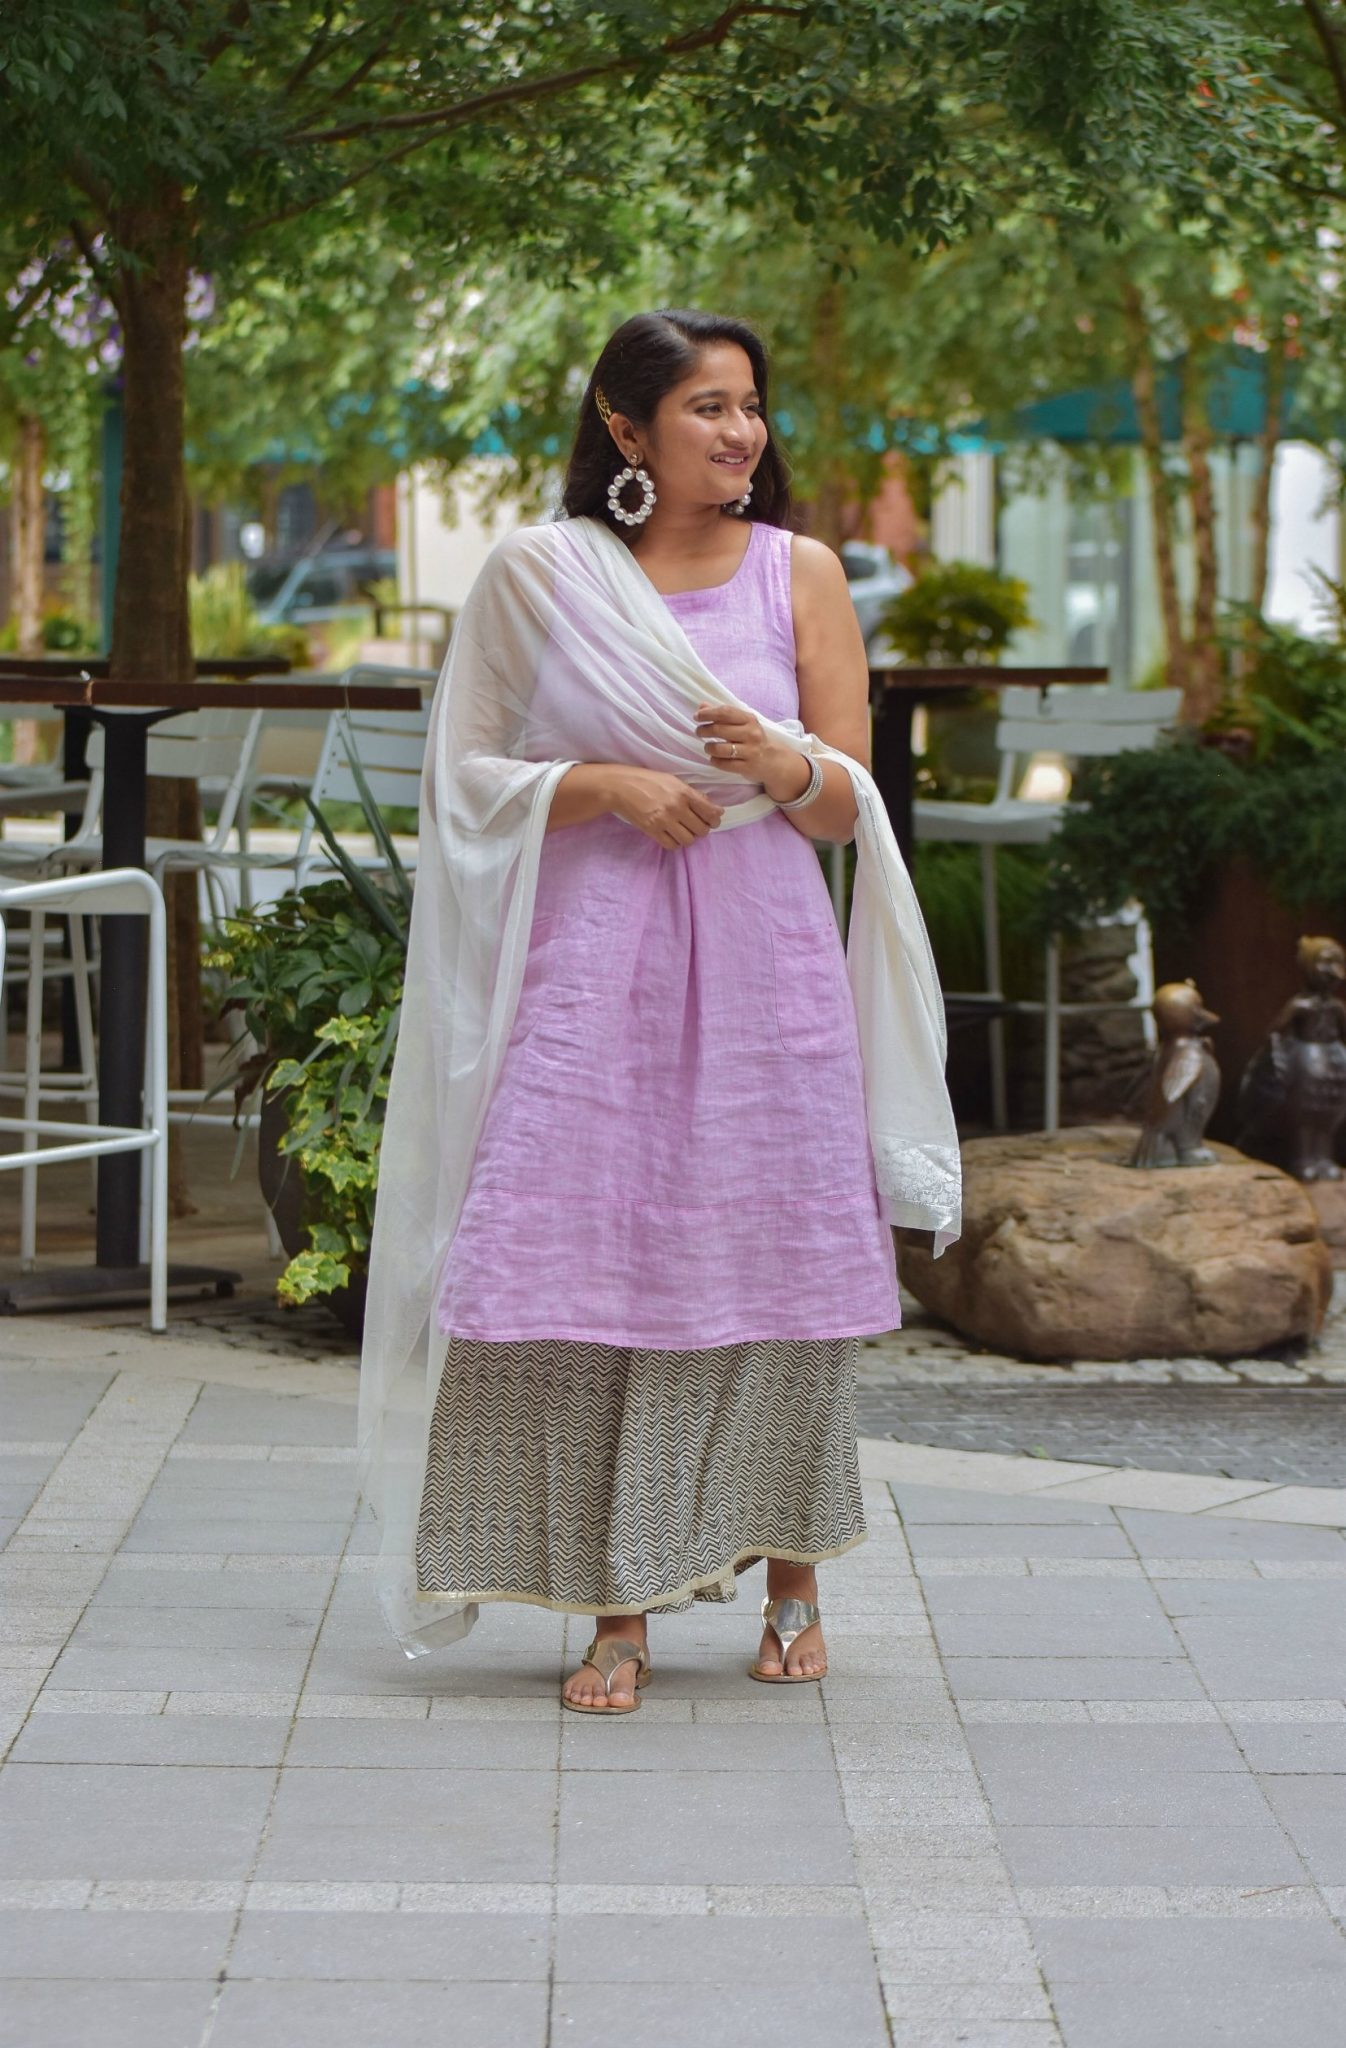 Wearing J.Jill Pleated Knit A-Line Dress, Wide leg pant, Pearl large hoops, White dupatta3 | Indo Western by popular Maryland modest fashion blog, Dreaming Loud: image of a woman wearing an Indo Wester outfit with a purple linen dress, culottes, sliver sandals, pearl hoop earrings, and a silk dupatta.